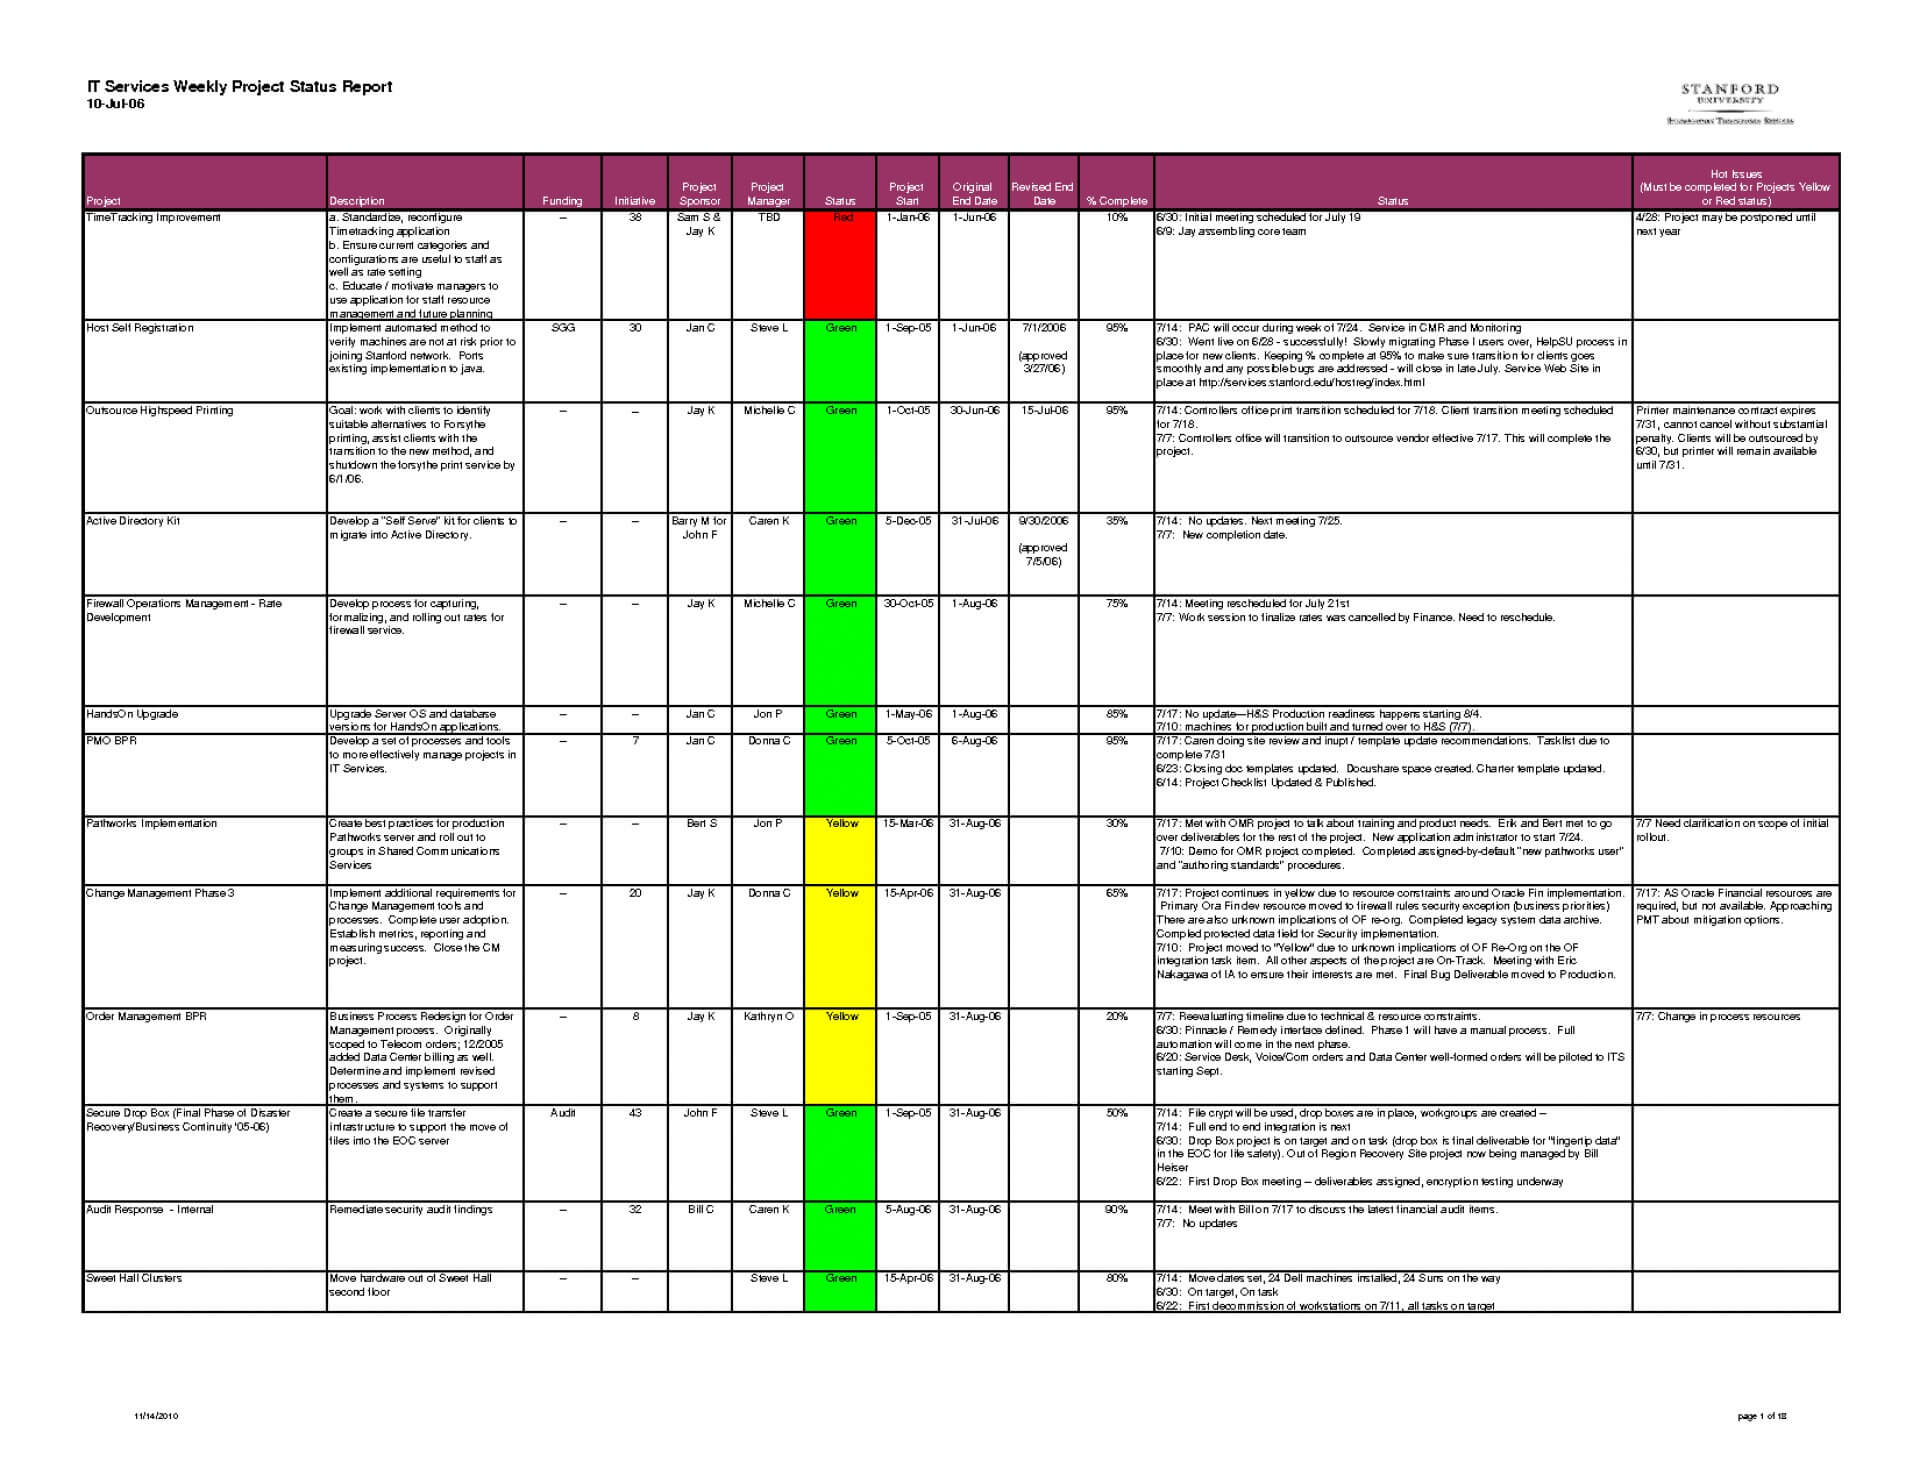 038 Weekly Status Report Template Excel Ideas How To Write Intended For Testing Weekly Status Report Template